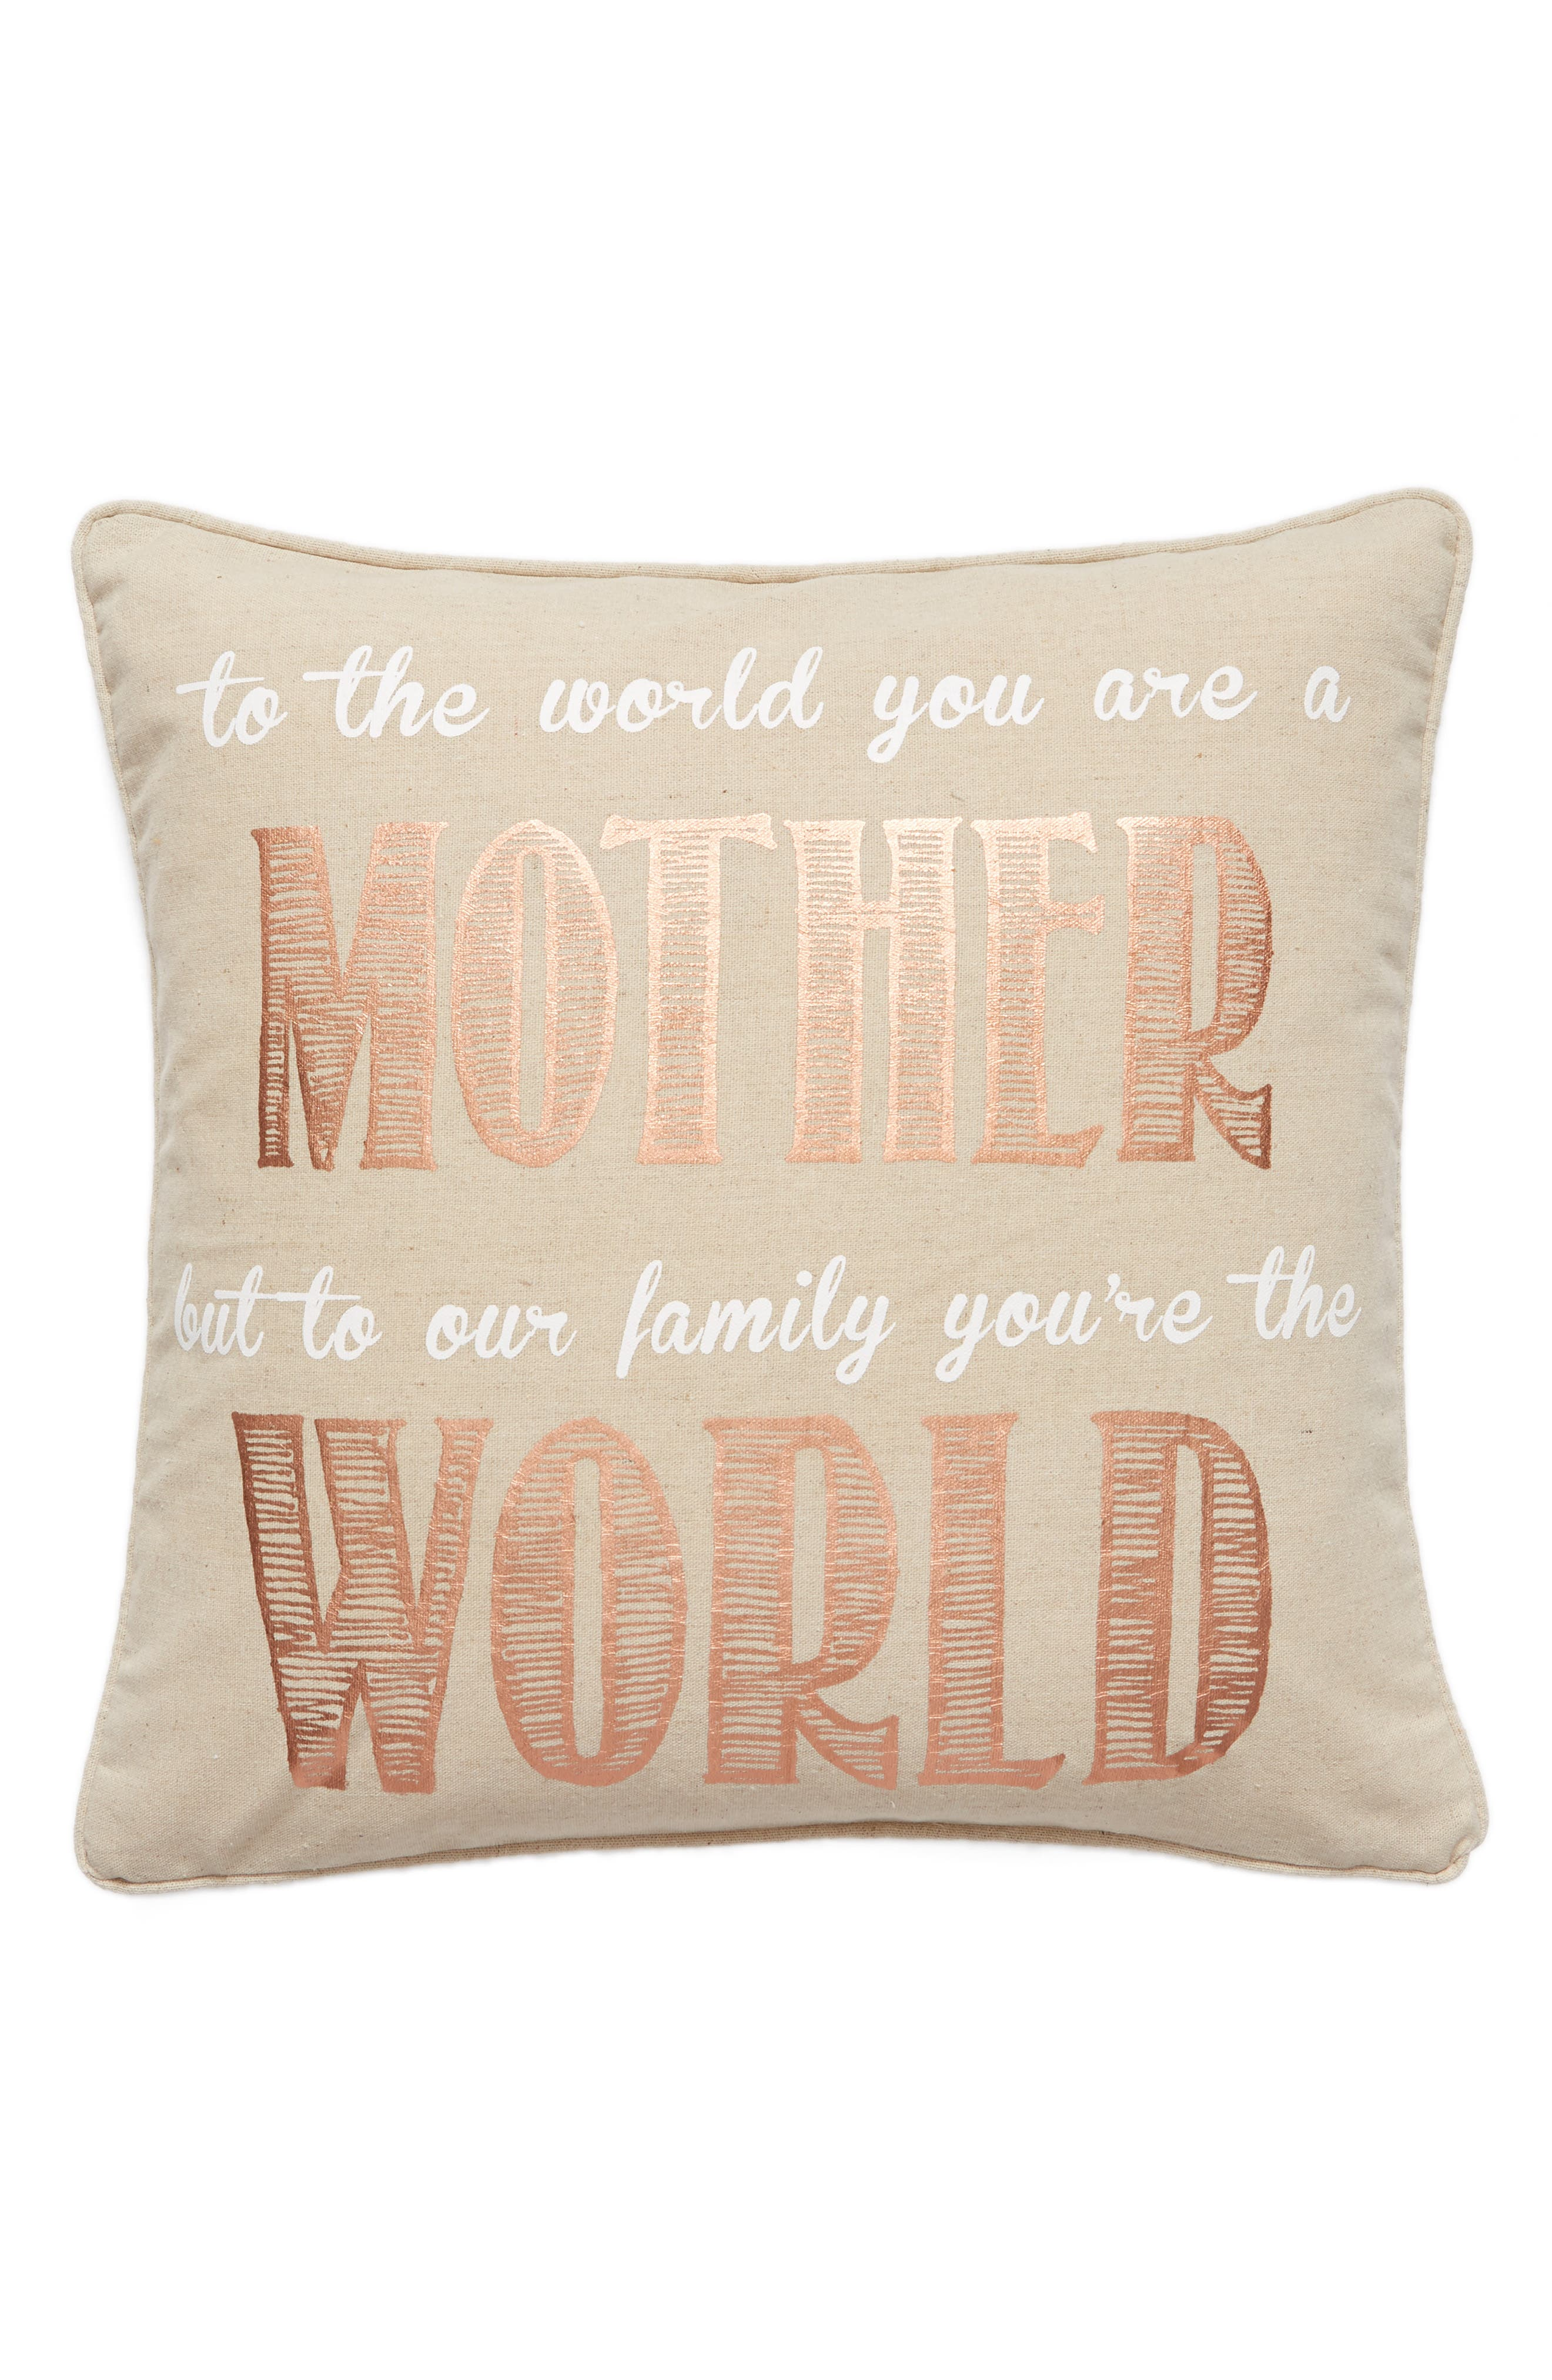 To the World You Are a Mother Accent Pillow,                             Main thumbnail 1, color,                             Taupe